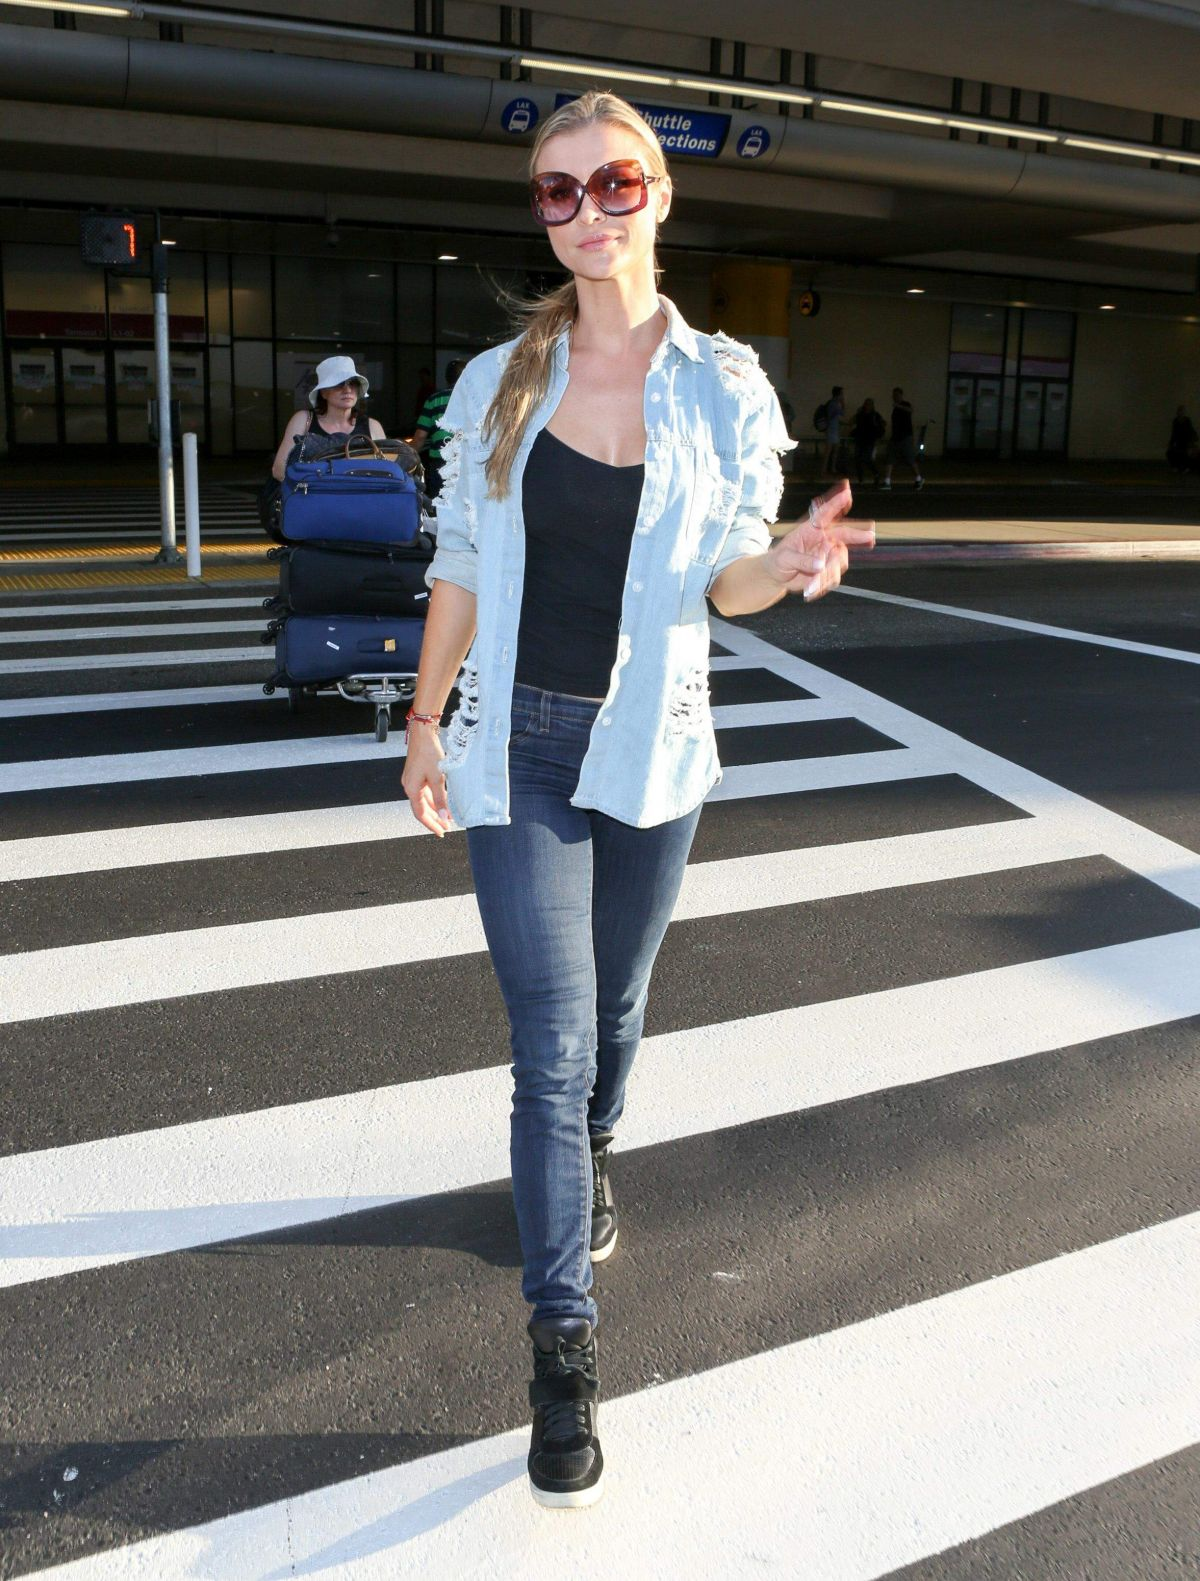 Joanna Krupa At LAX International Airport, Los Angeles   joanna-krupa-at-lax-international-airport-los-angeles_7